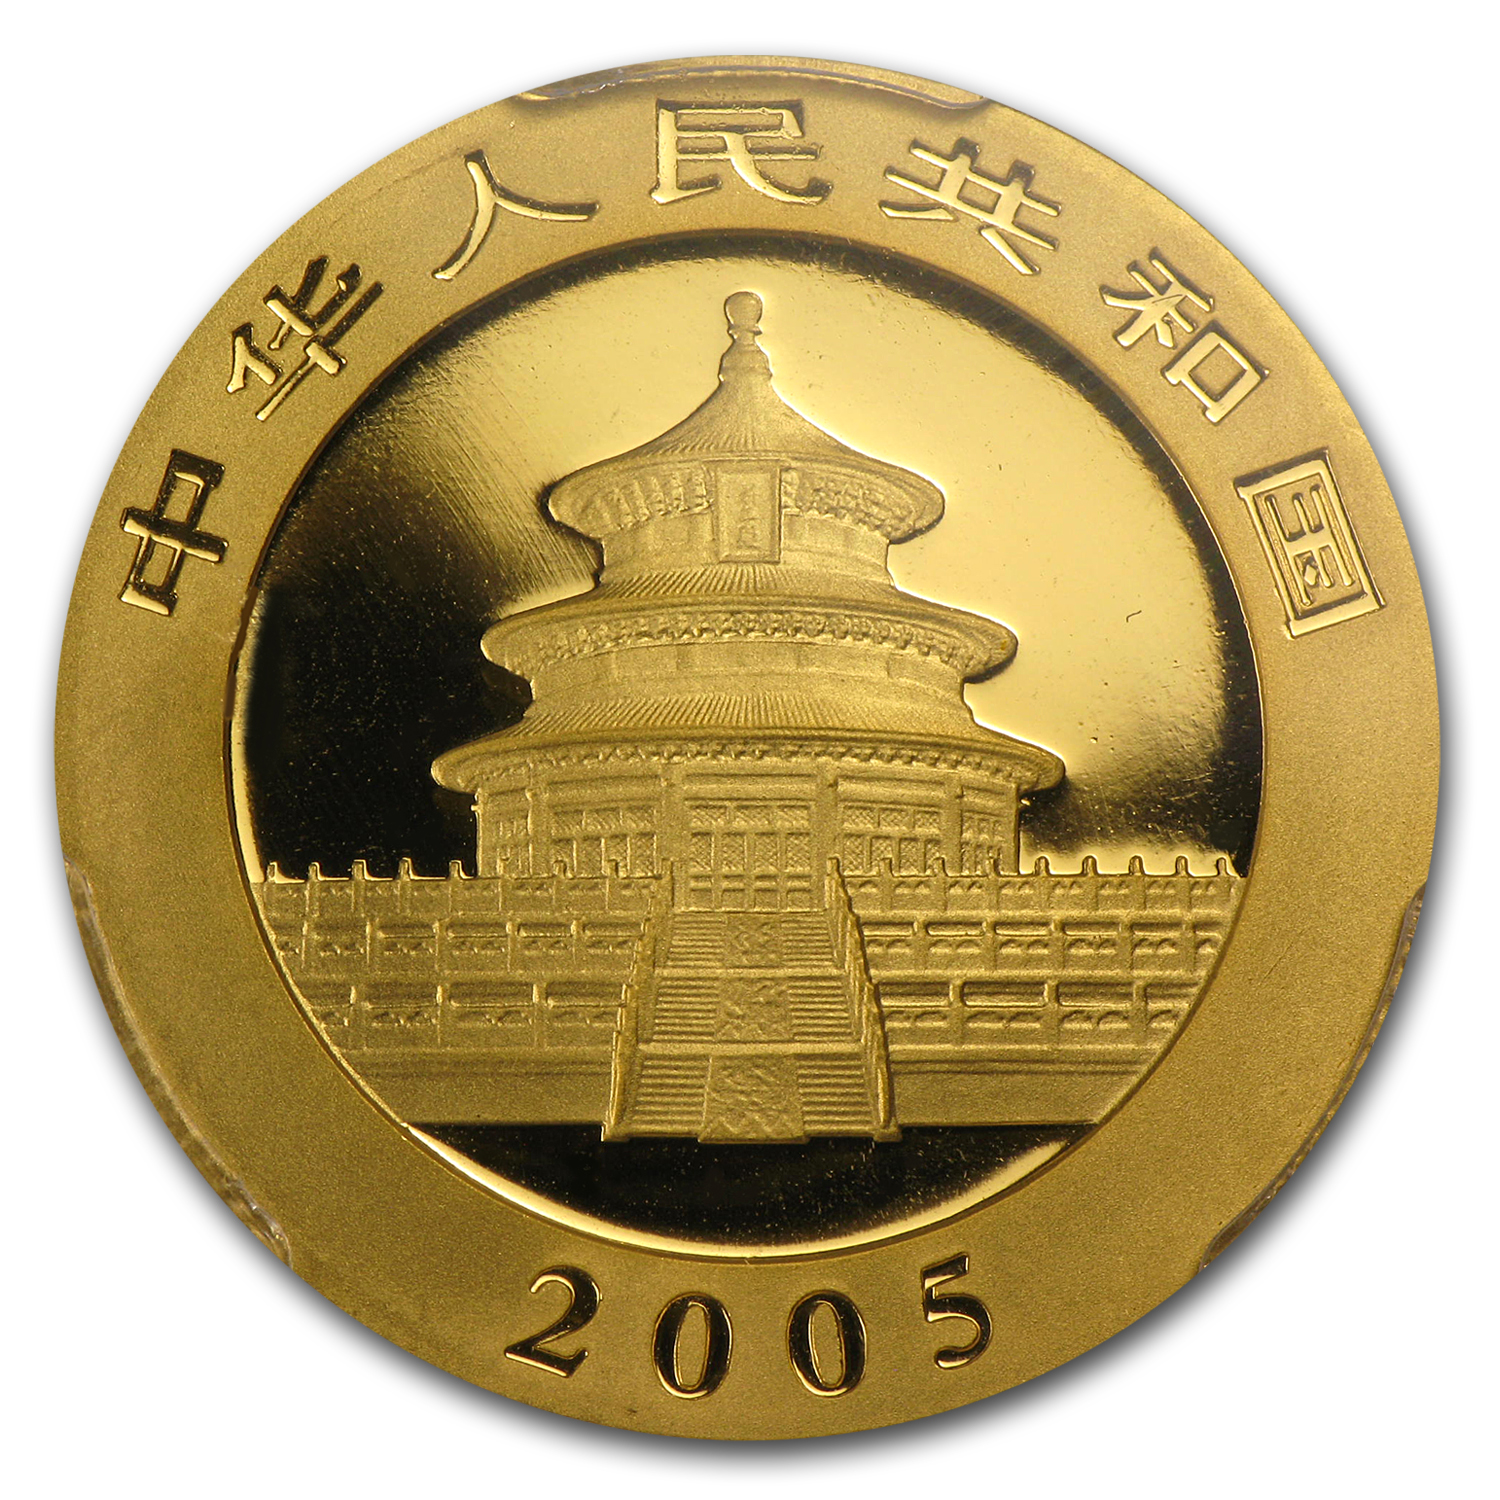 2005 China 1/2 oz Gold Panda MS-70 PCGS